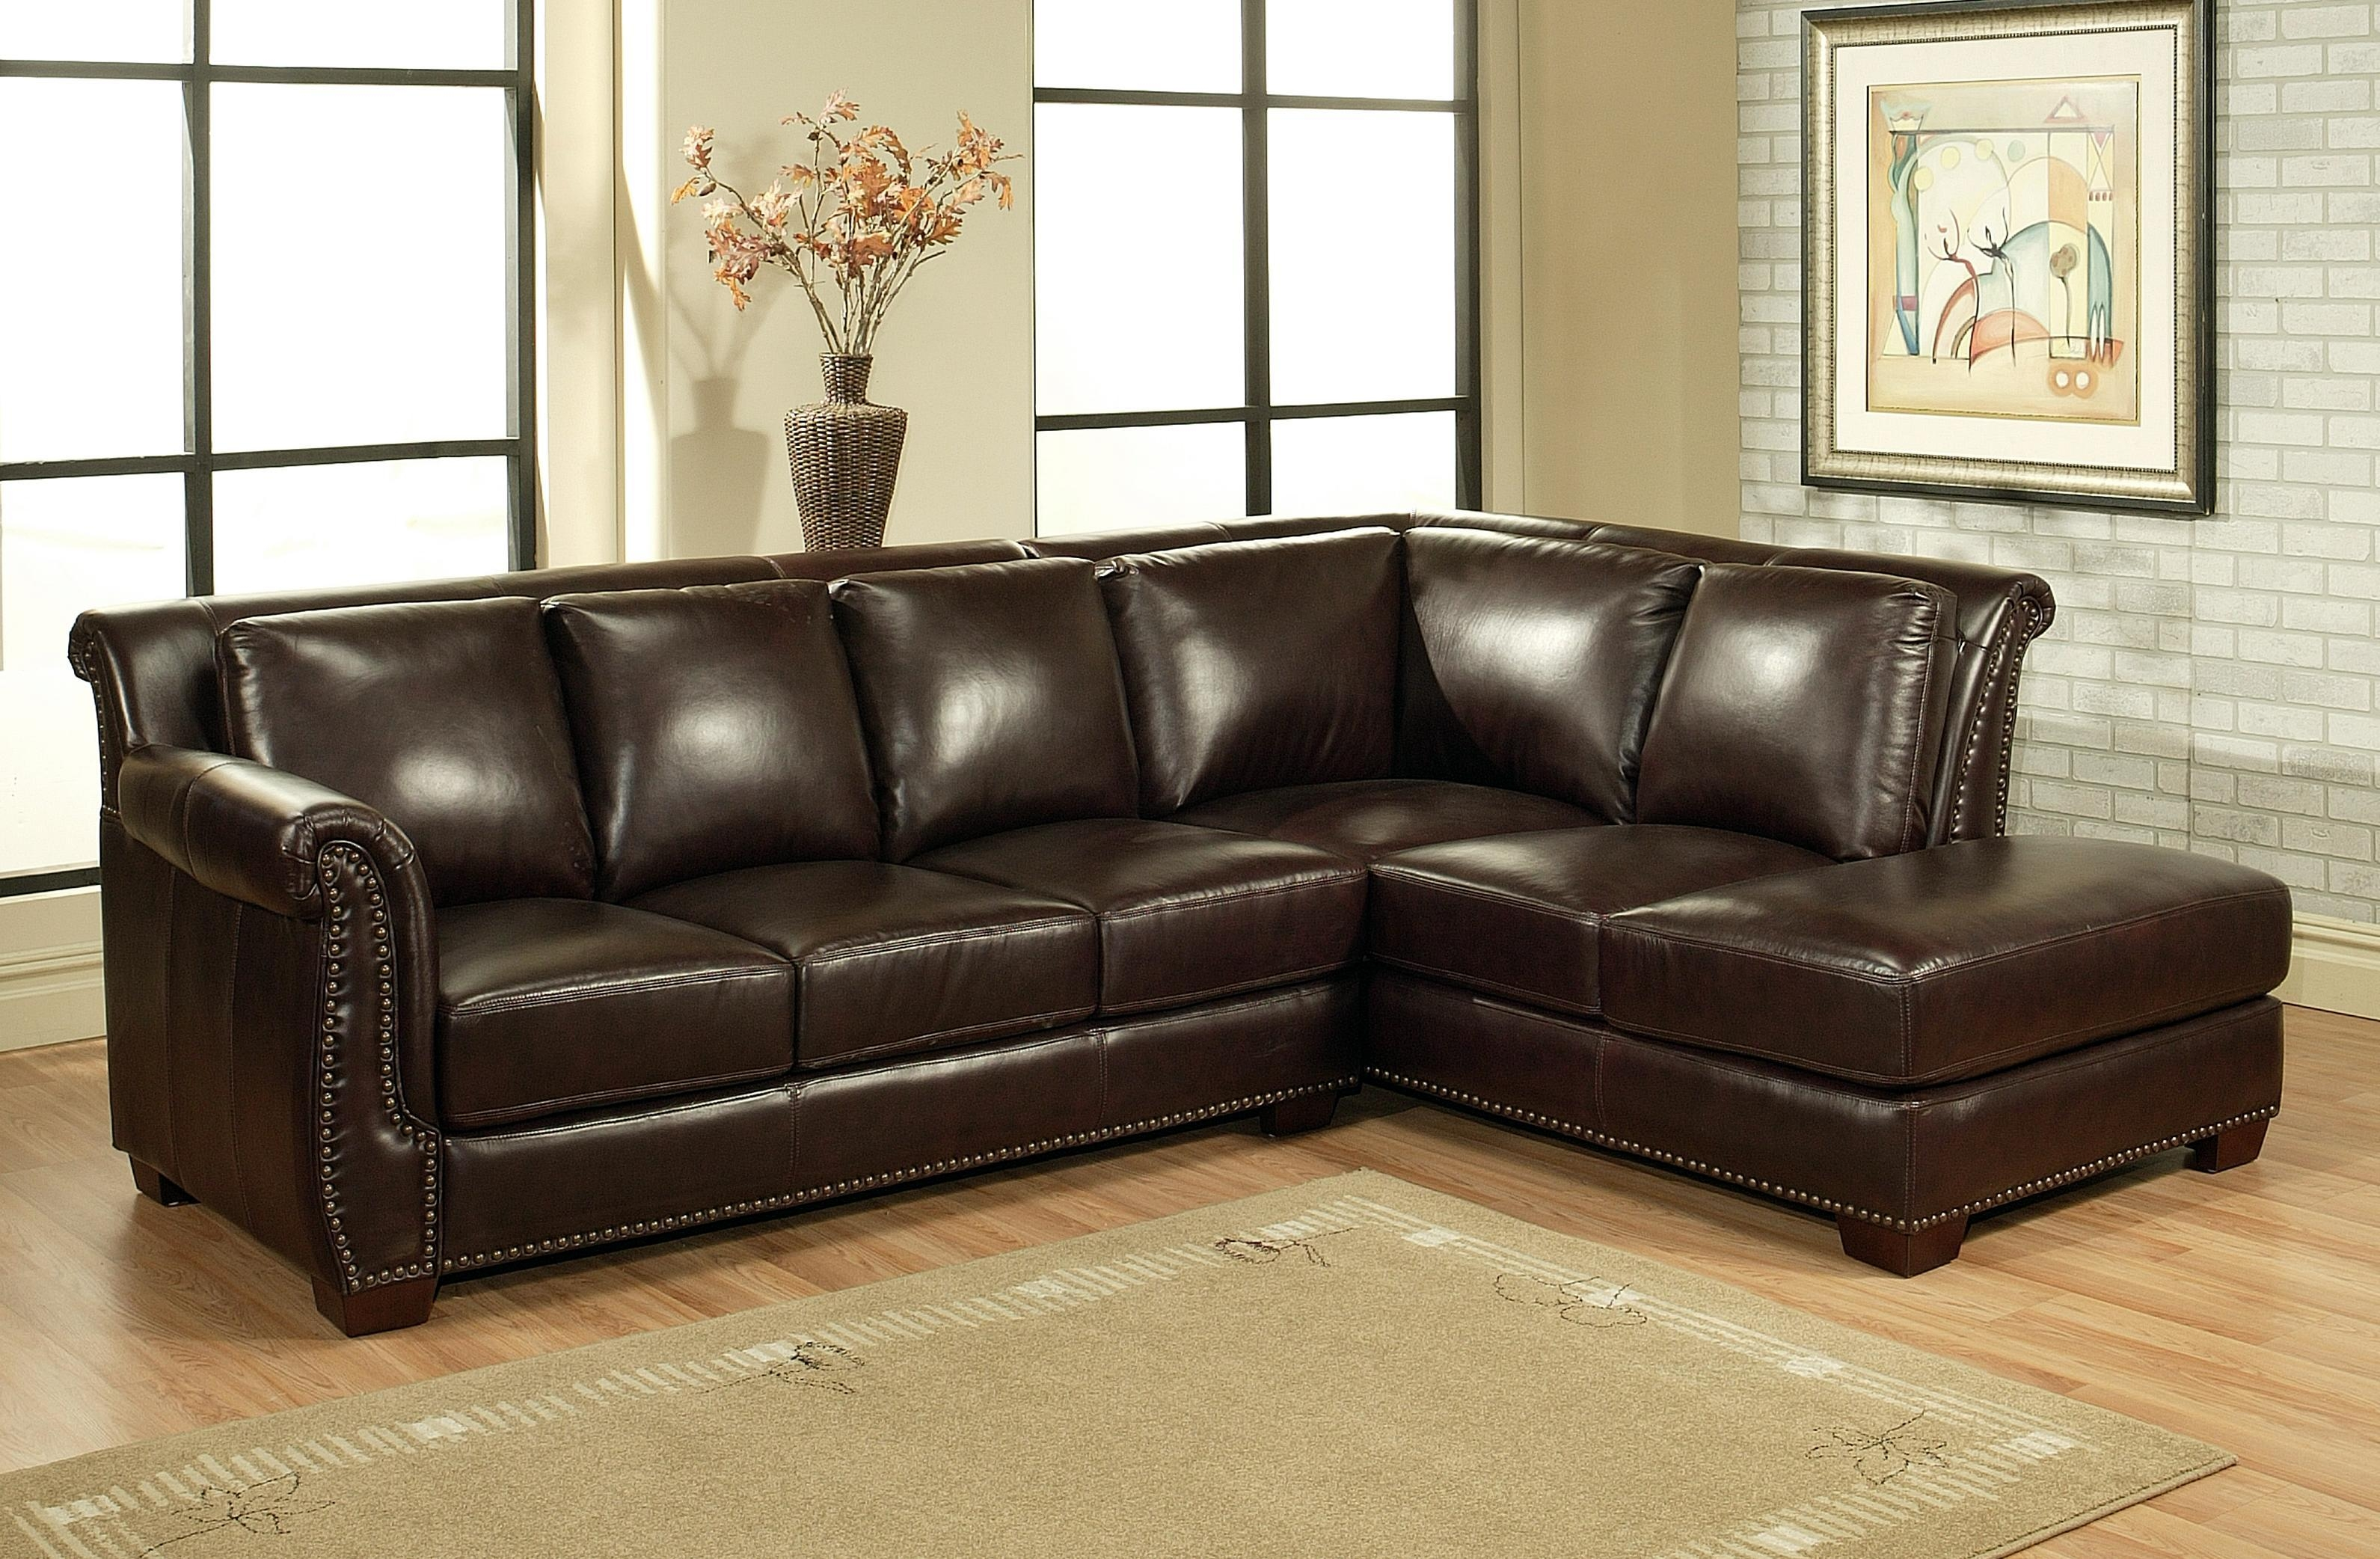 Sofa Leather Sectional Inside Abbyson Sectional Sofas (Image 18 of 20)